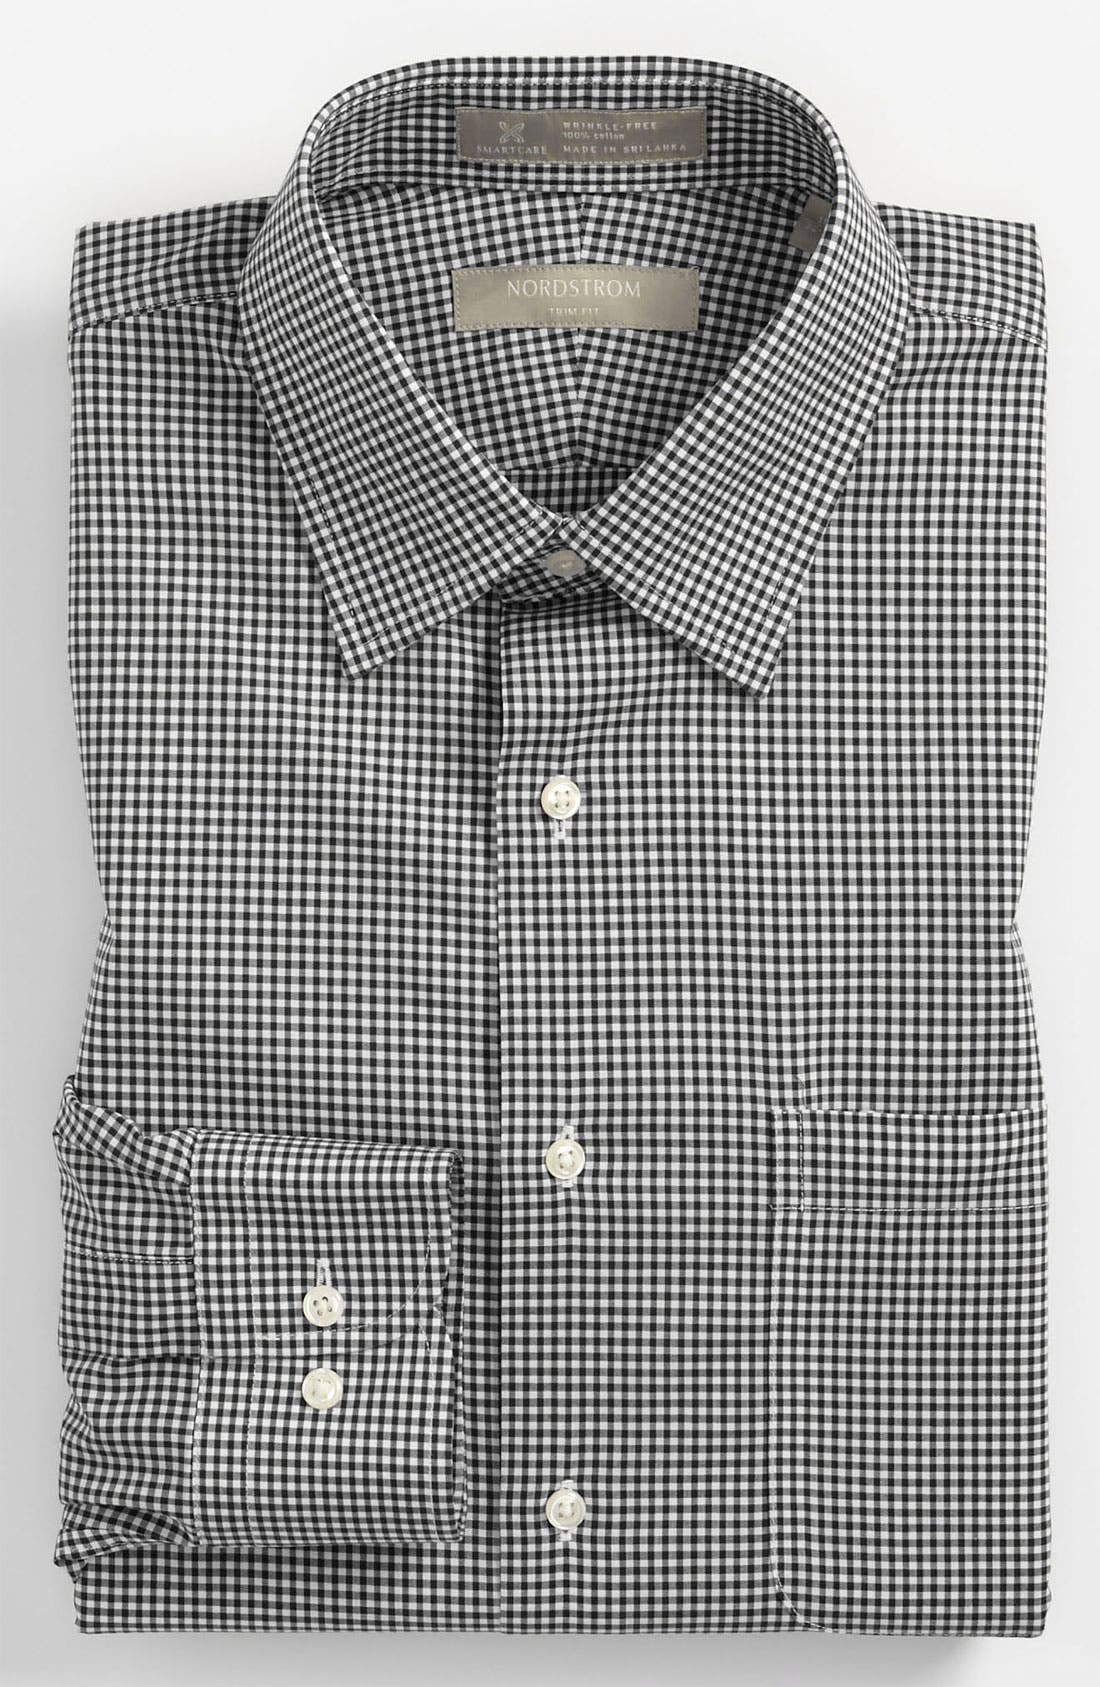 Alternate Image 1 Selected - Nordstrom Men's Shop Smartcare™ Trim Fit Dress Shirt